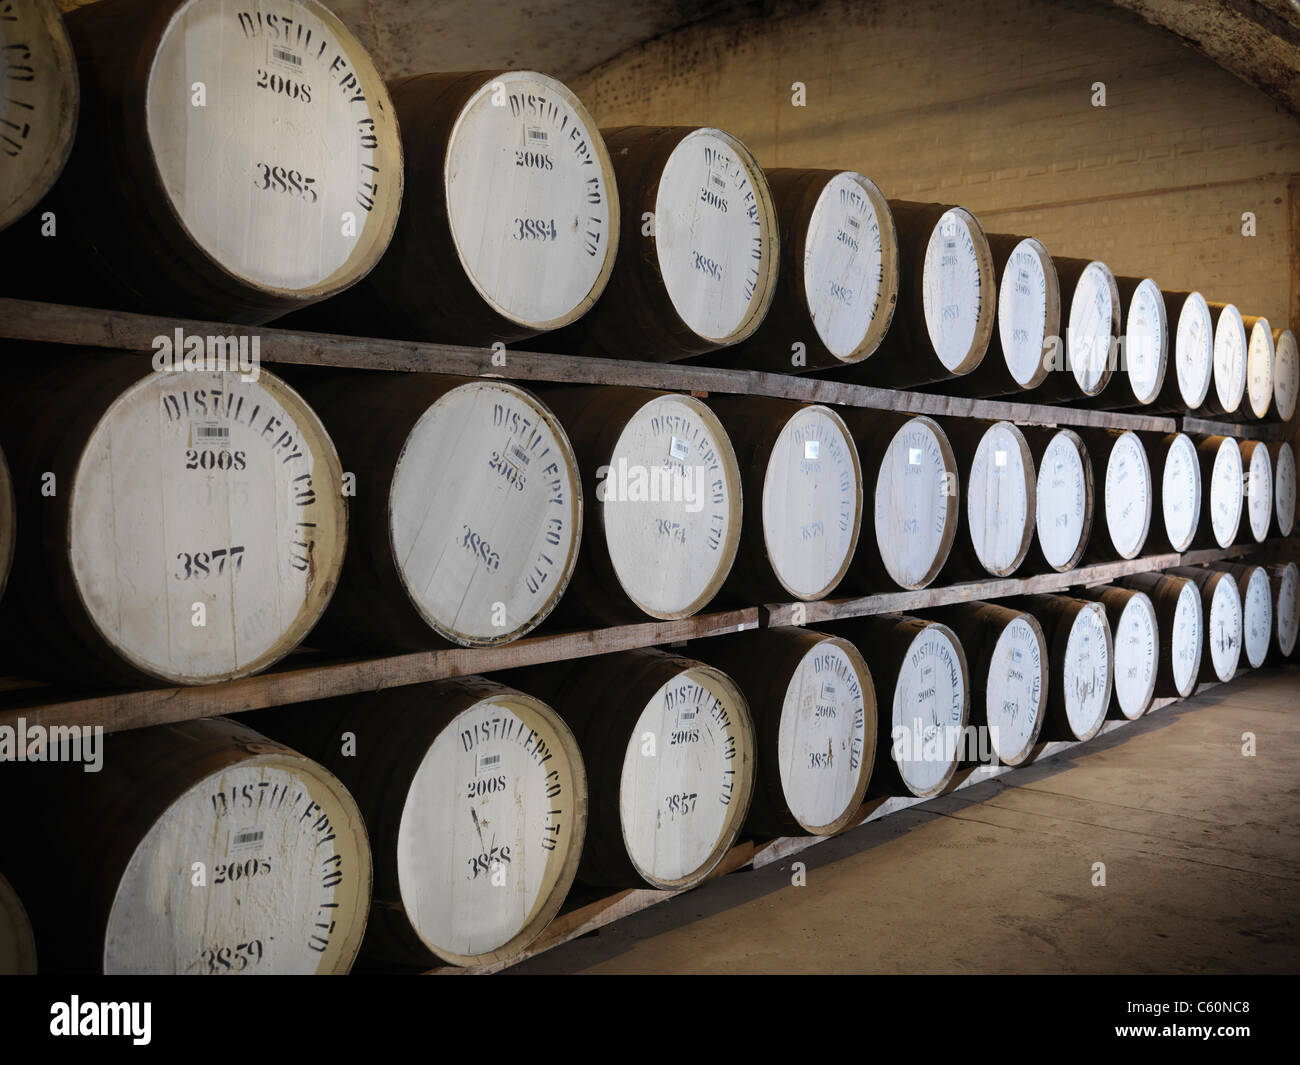 Barrels of whisky in distillery - Stock Image